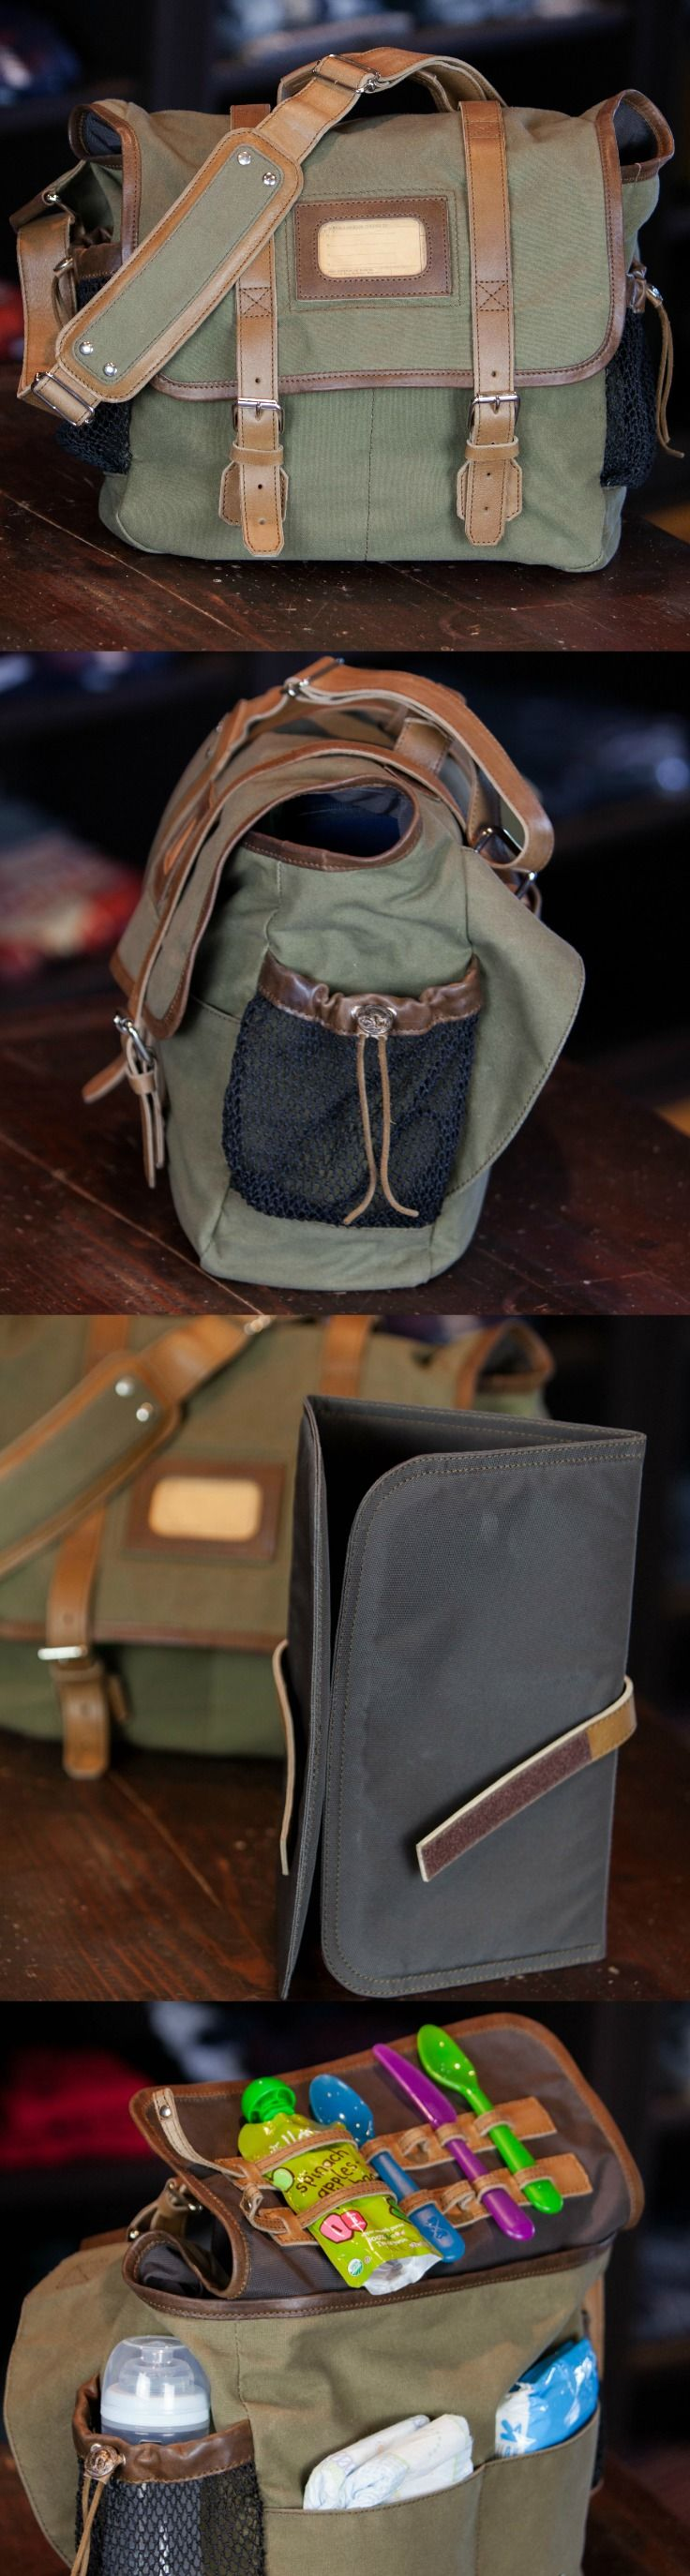 The manliest diaper bag you've ever seen. By Buffalo Jackson Trading Co.: The Elkton waxed canvas mens diaper bag. Removable nylon changing pad, adjustable leather strap. diaper bag for dad | diaper bags that don't suck